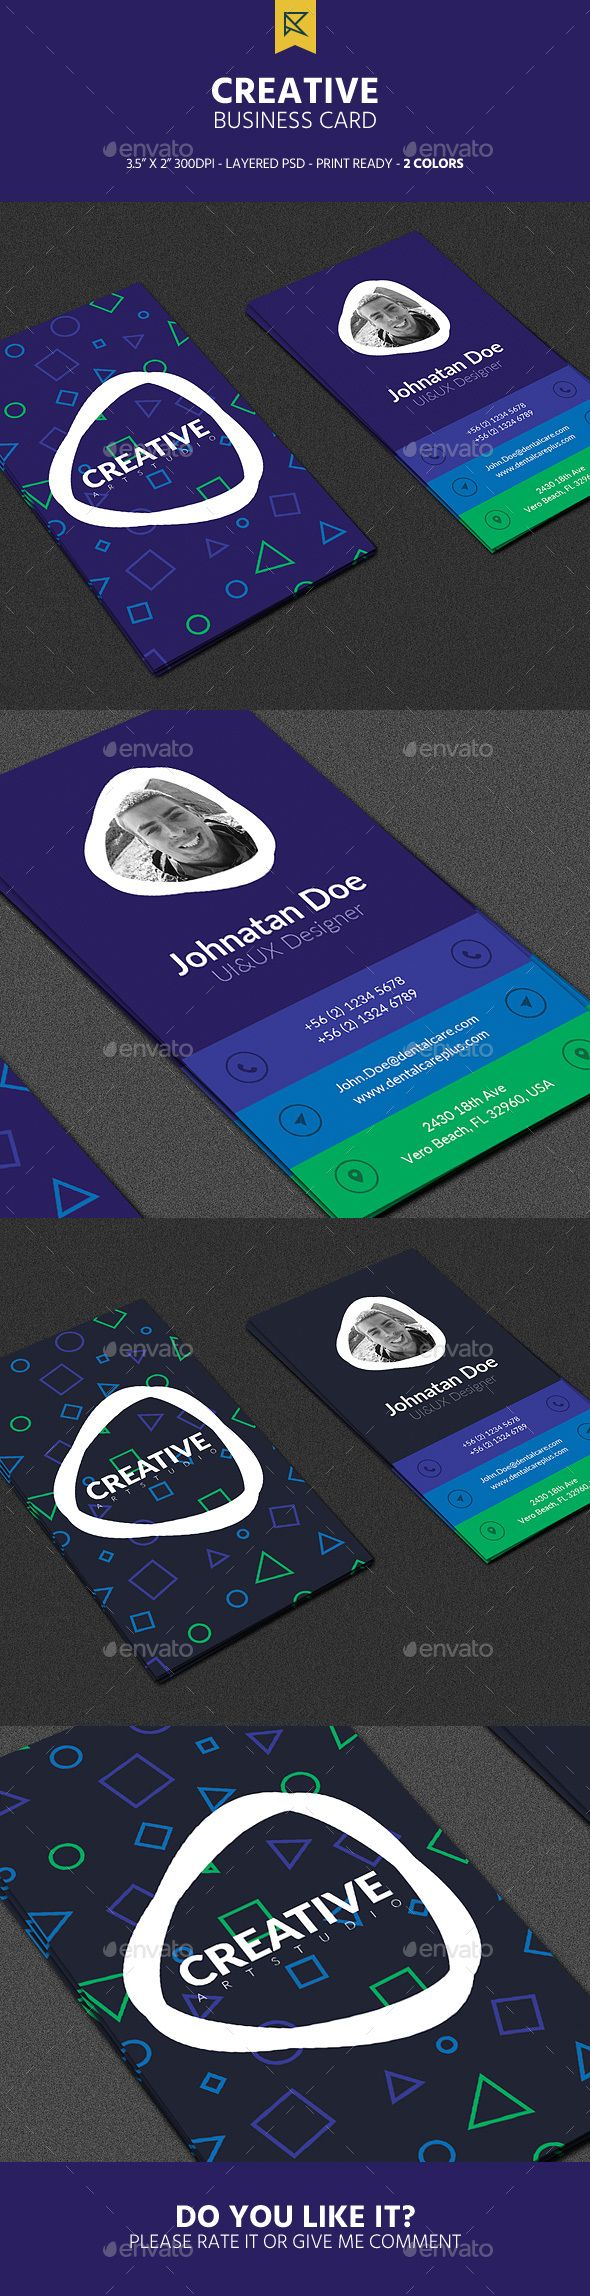 Creative Vertical Business Card - Creative Business Cards Download here : https://graphicriver.net/item/creative-vertical-business-card/19307618?s_rank=132&ref=Al-fatih